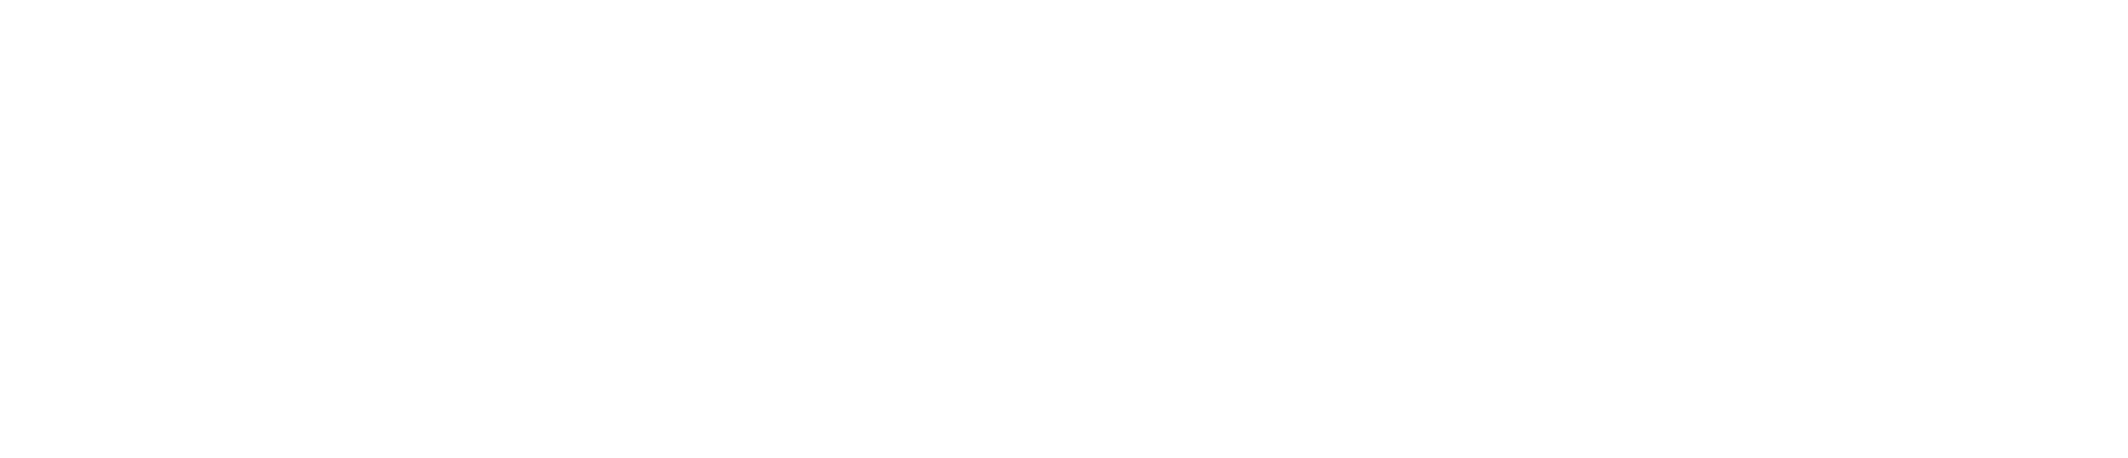 GRPFLY CReative makes brands amazing. We are a full-service digital agency built for today's world.